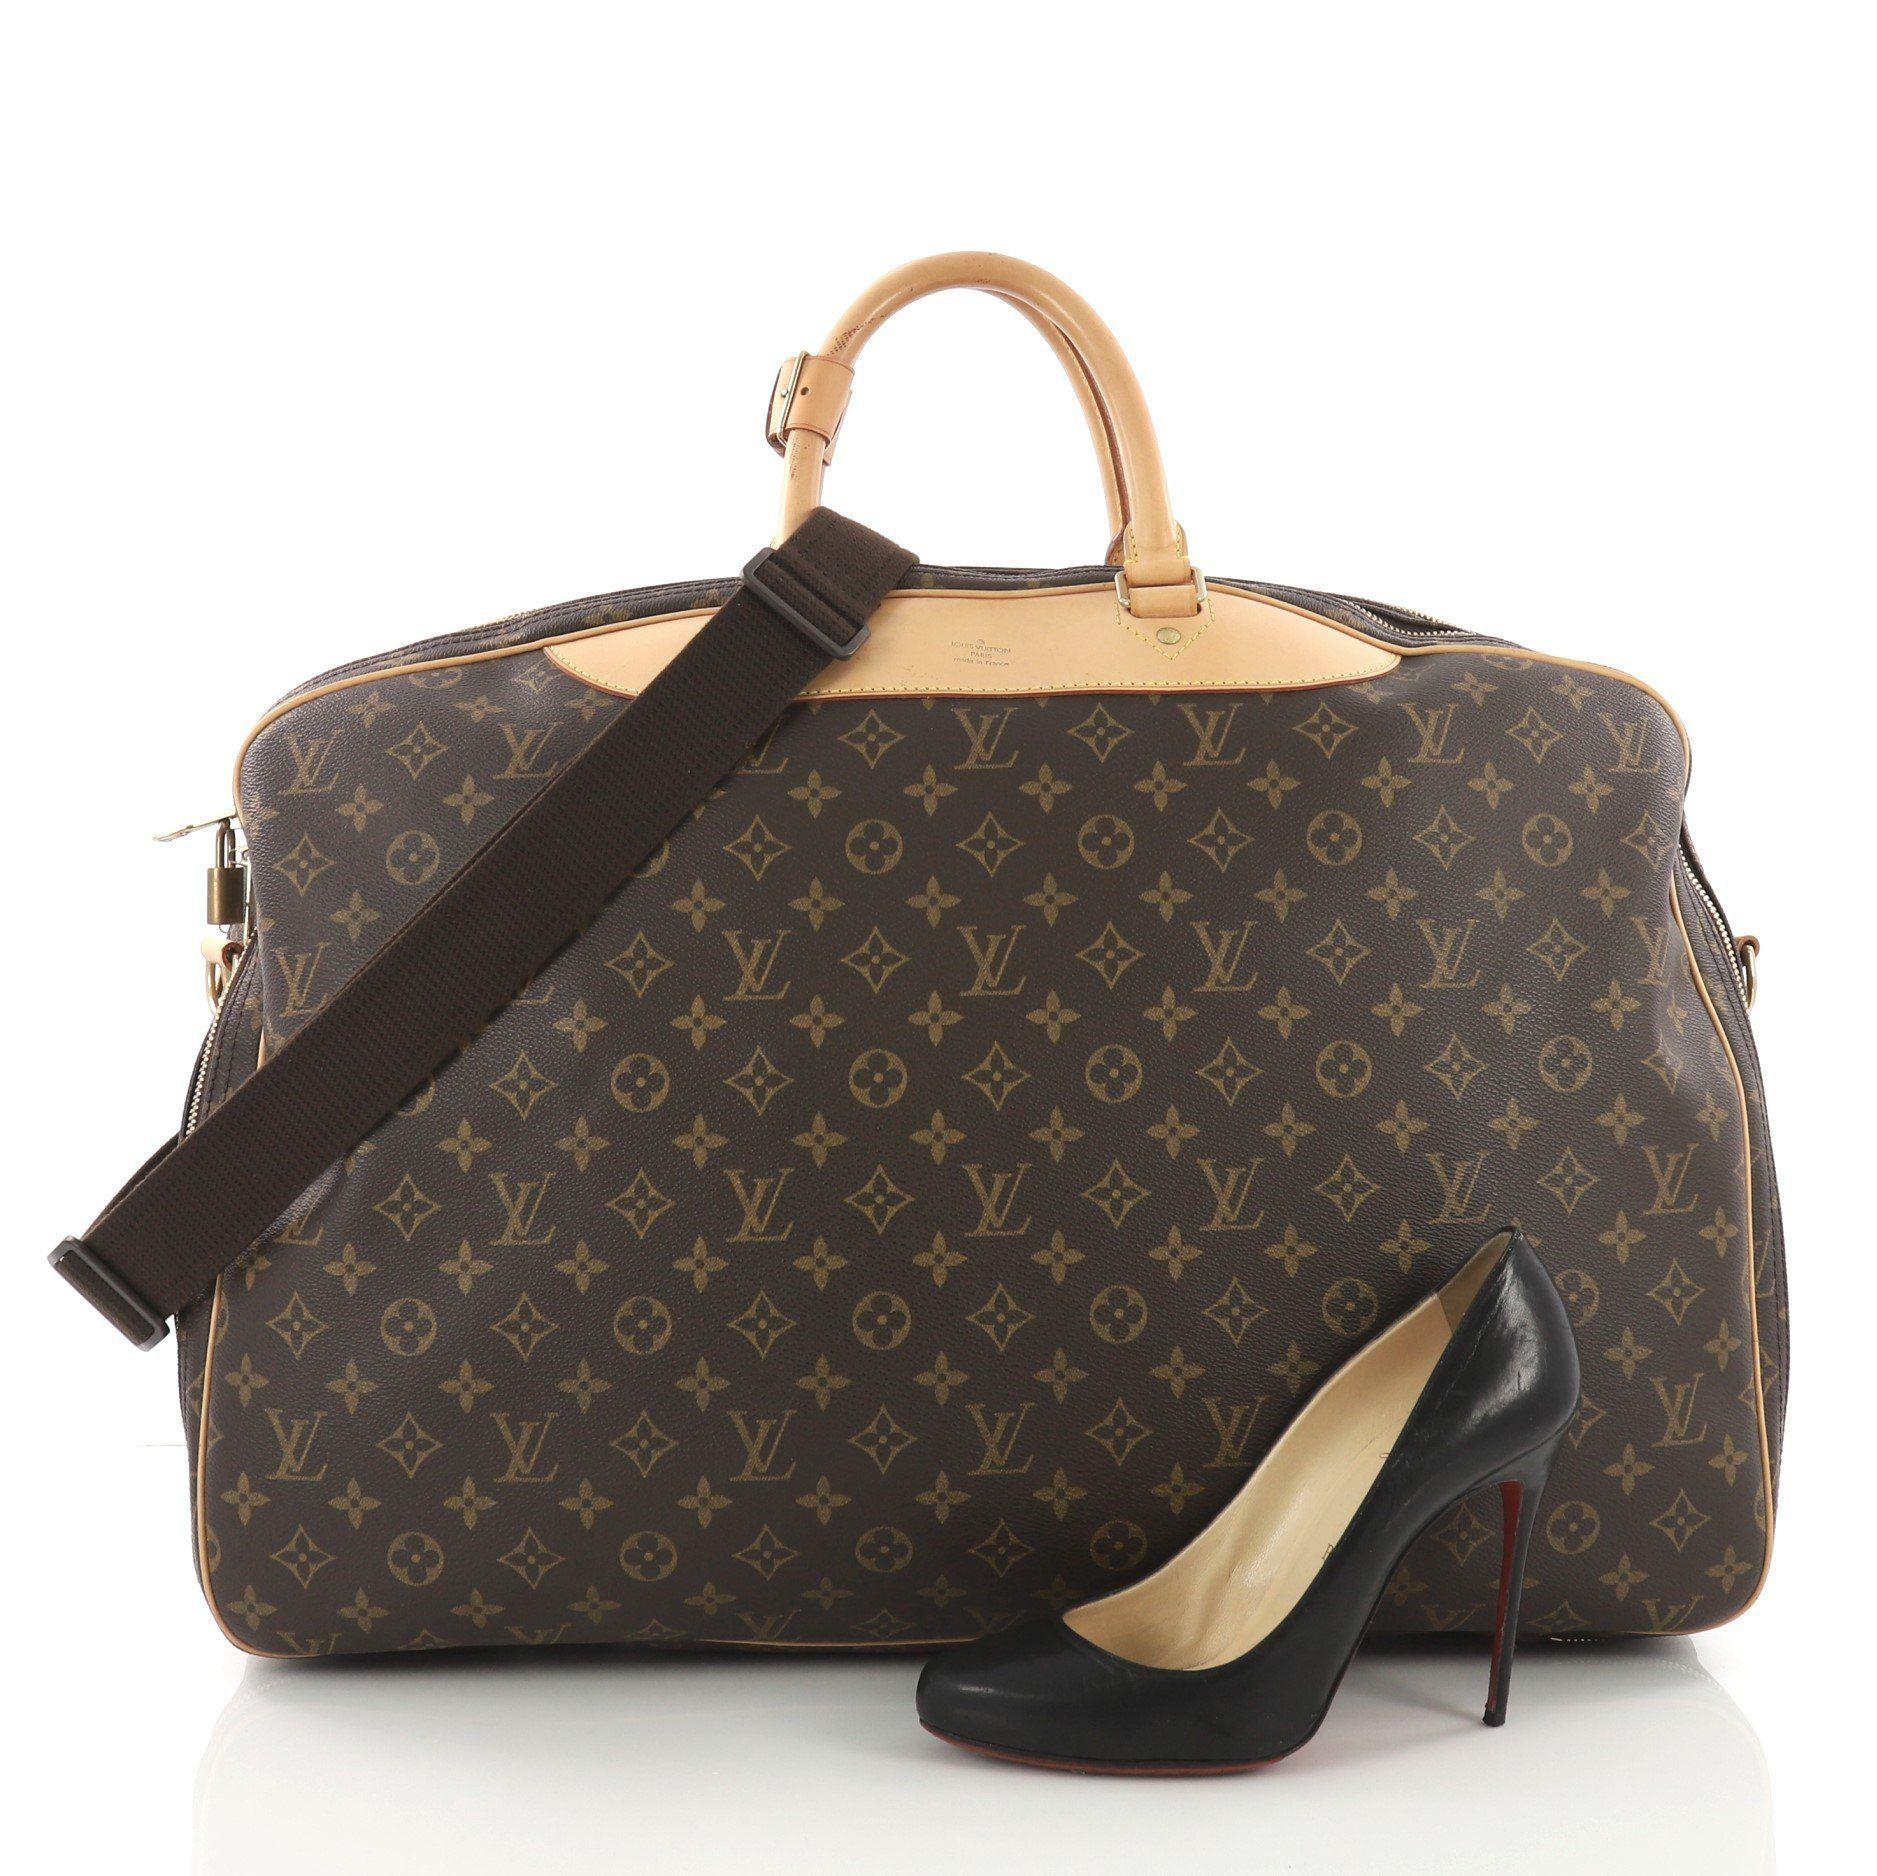 Louis Vuitton - Multicolor Pre Owned Alize Bag Monogram Canvas 2 Poches -  Lyst. View fullscreen 3312434b4db2b